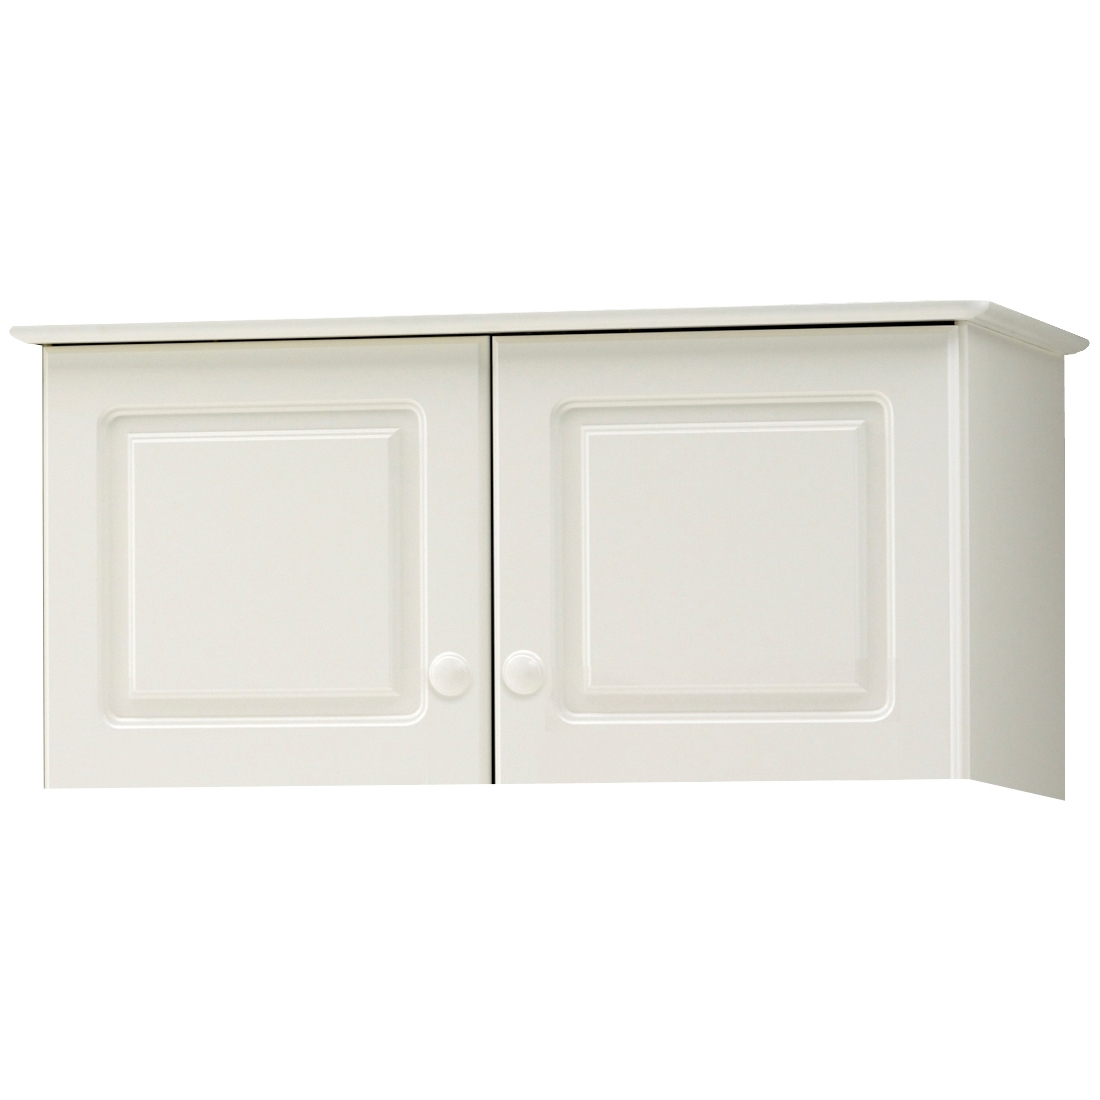 Richmond Wardrobe Topbox White – Simply Furniture Inside Recent Richmond Wardrobes (View 9 of 15)